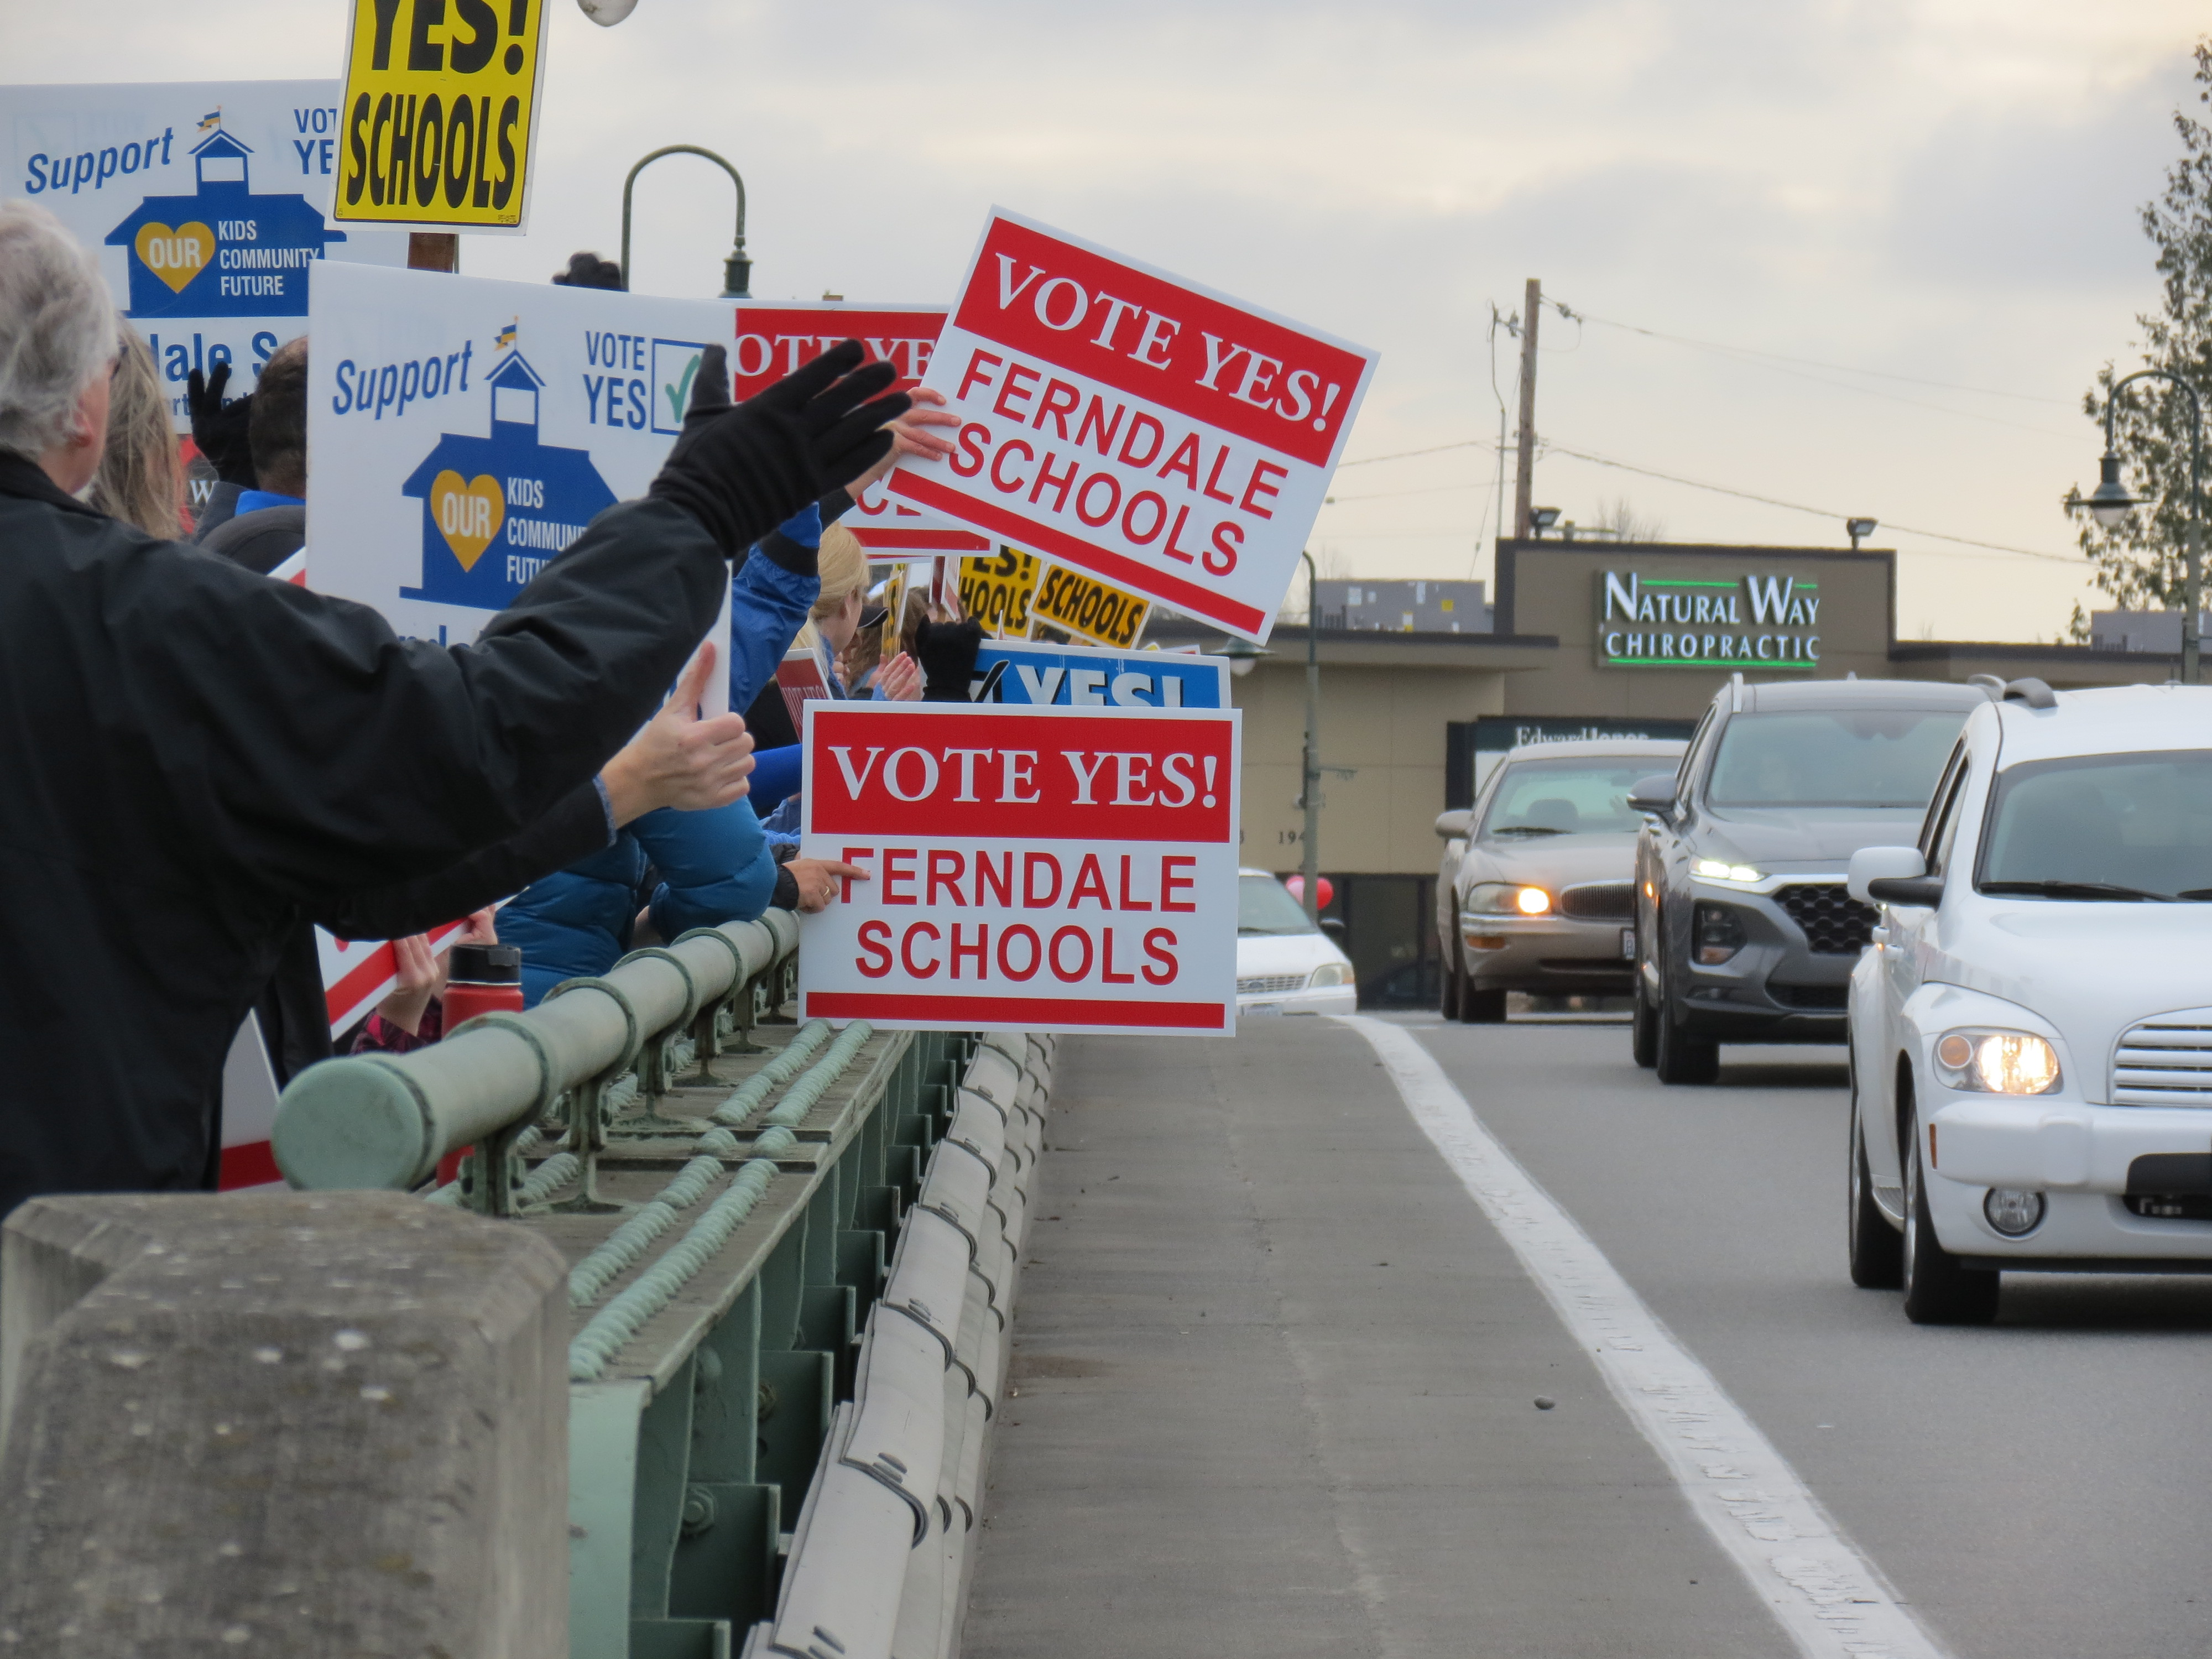 School bond proposal supporters gathered on the Main Street Pioneer Bridge after a rally at Pioneer Park (January 26, 2019). Photo: My Ferndale News